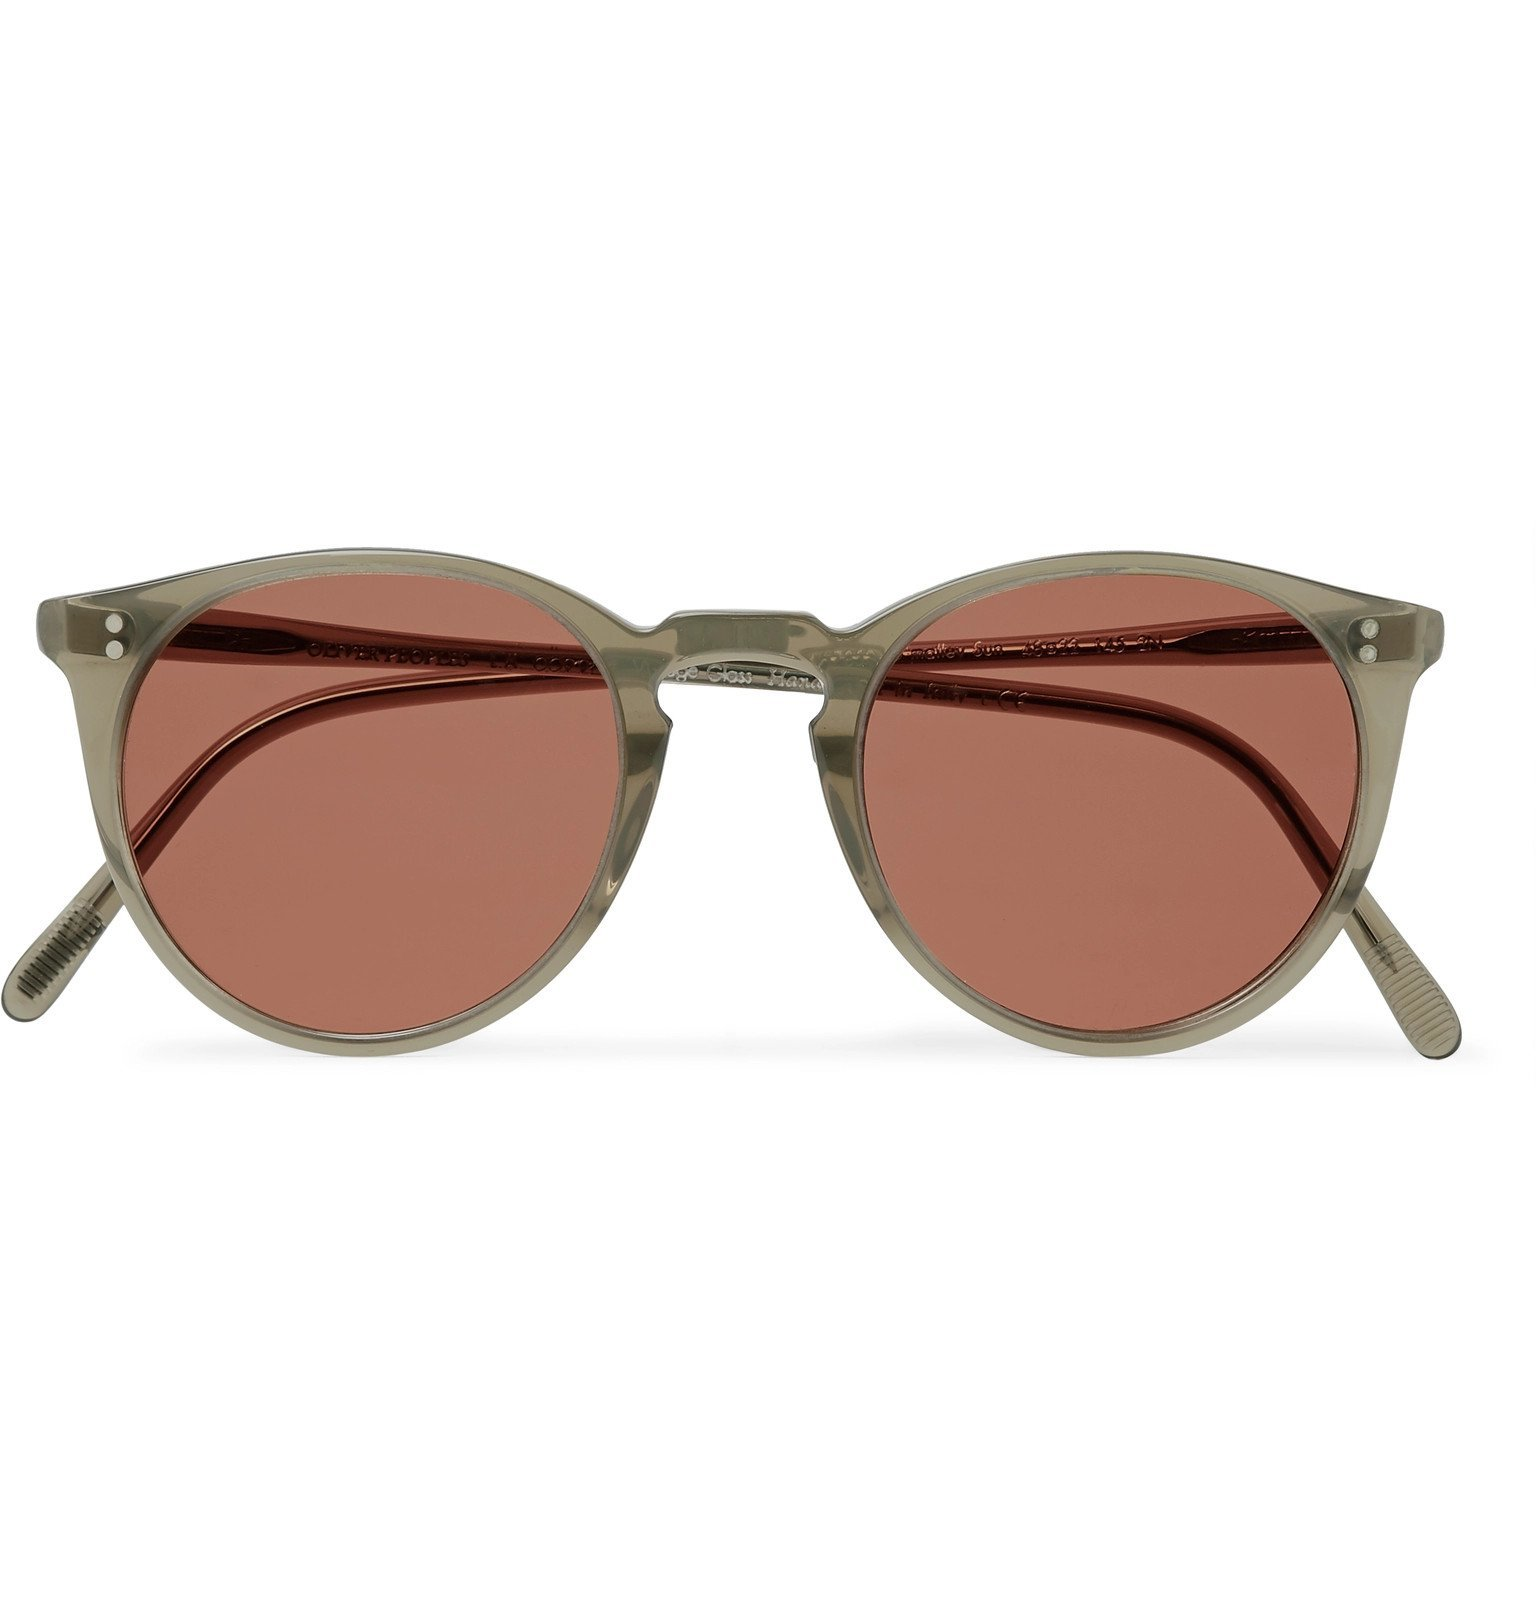 Oliver Peoples - O'Malley Round-Frame Acetate Sunglasses - Green